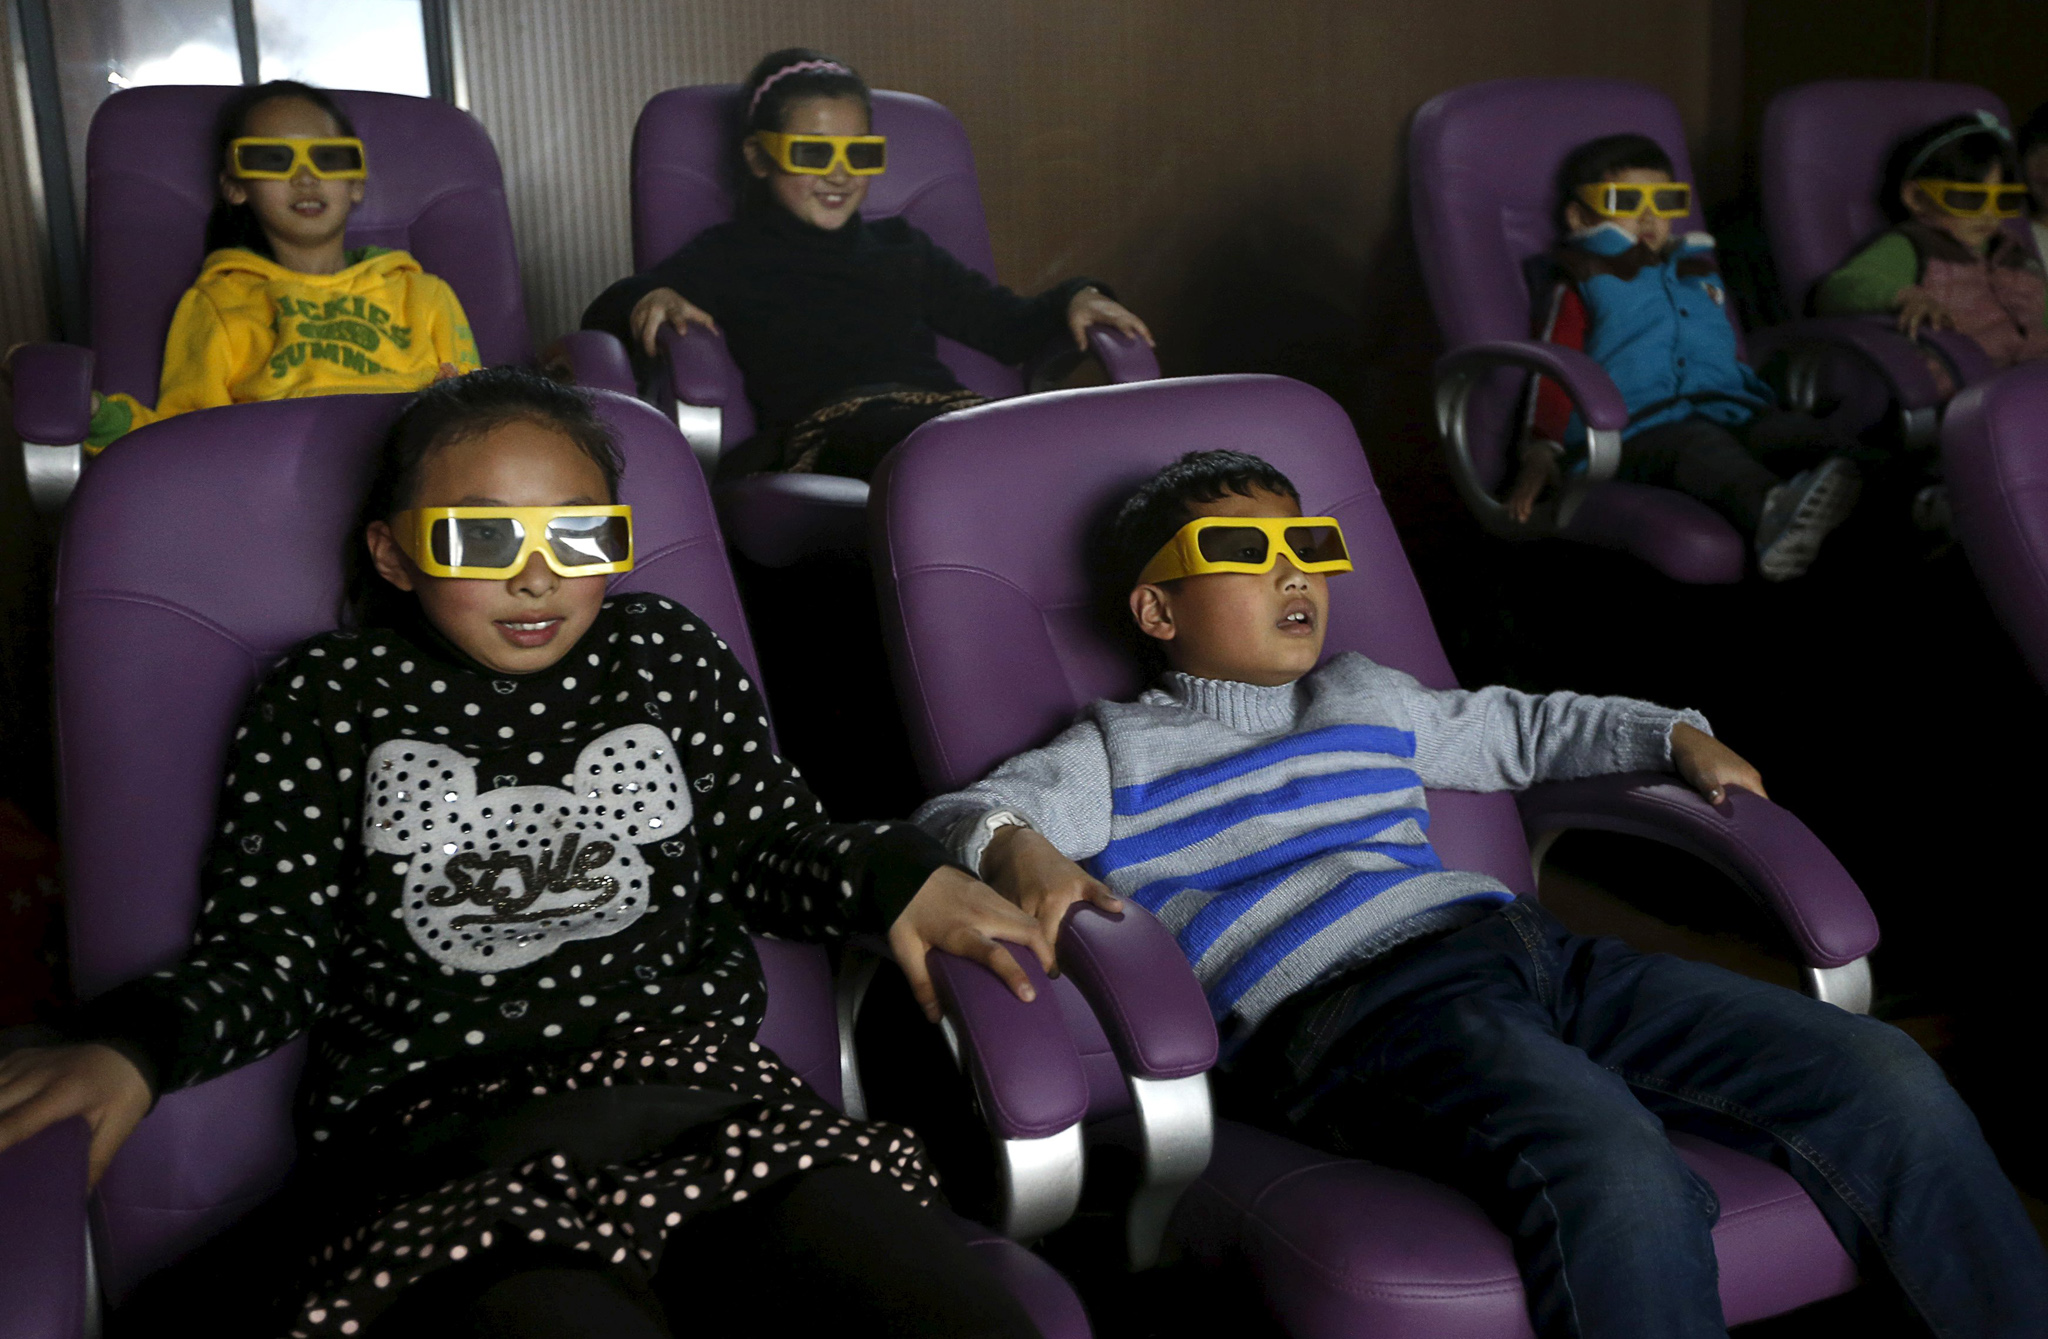 Children watch a 3D war movie at a community theatre in Hefei, Anhui province, China.